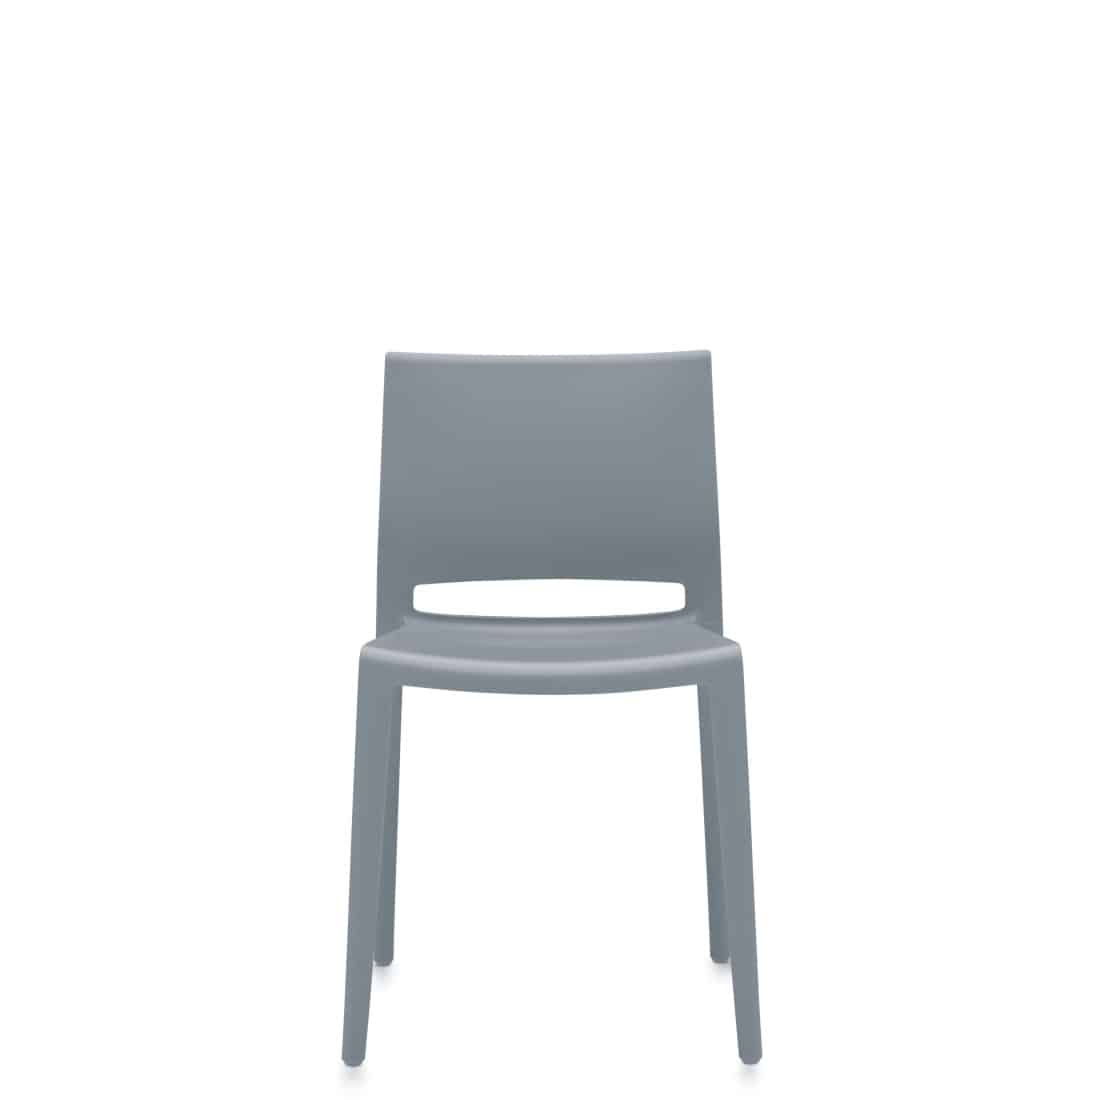 Bakhita occasional chair with Grey frame